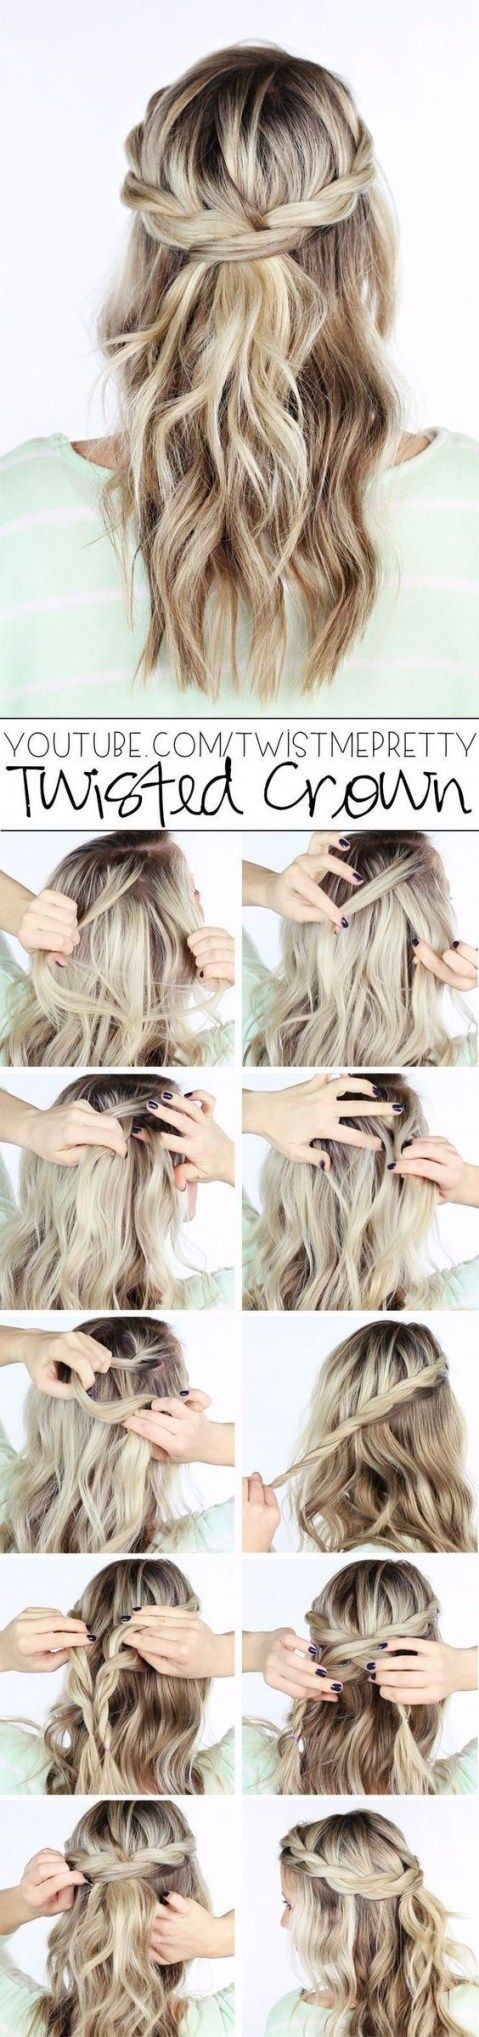 Wedding Guest Hairstyles For Long Hair Pinterest